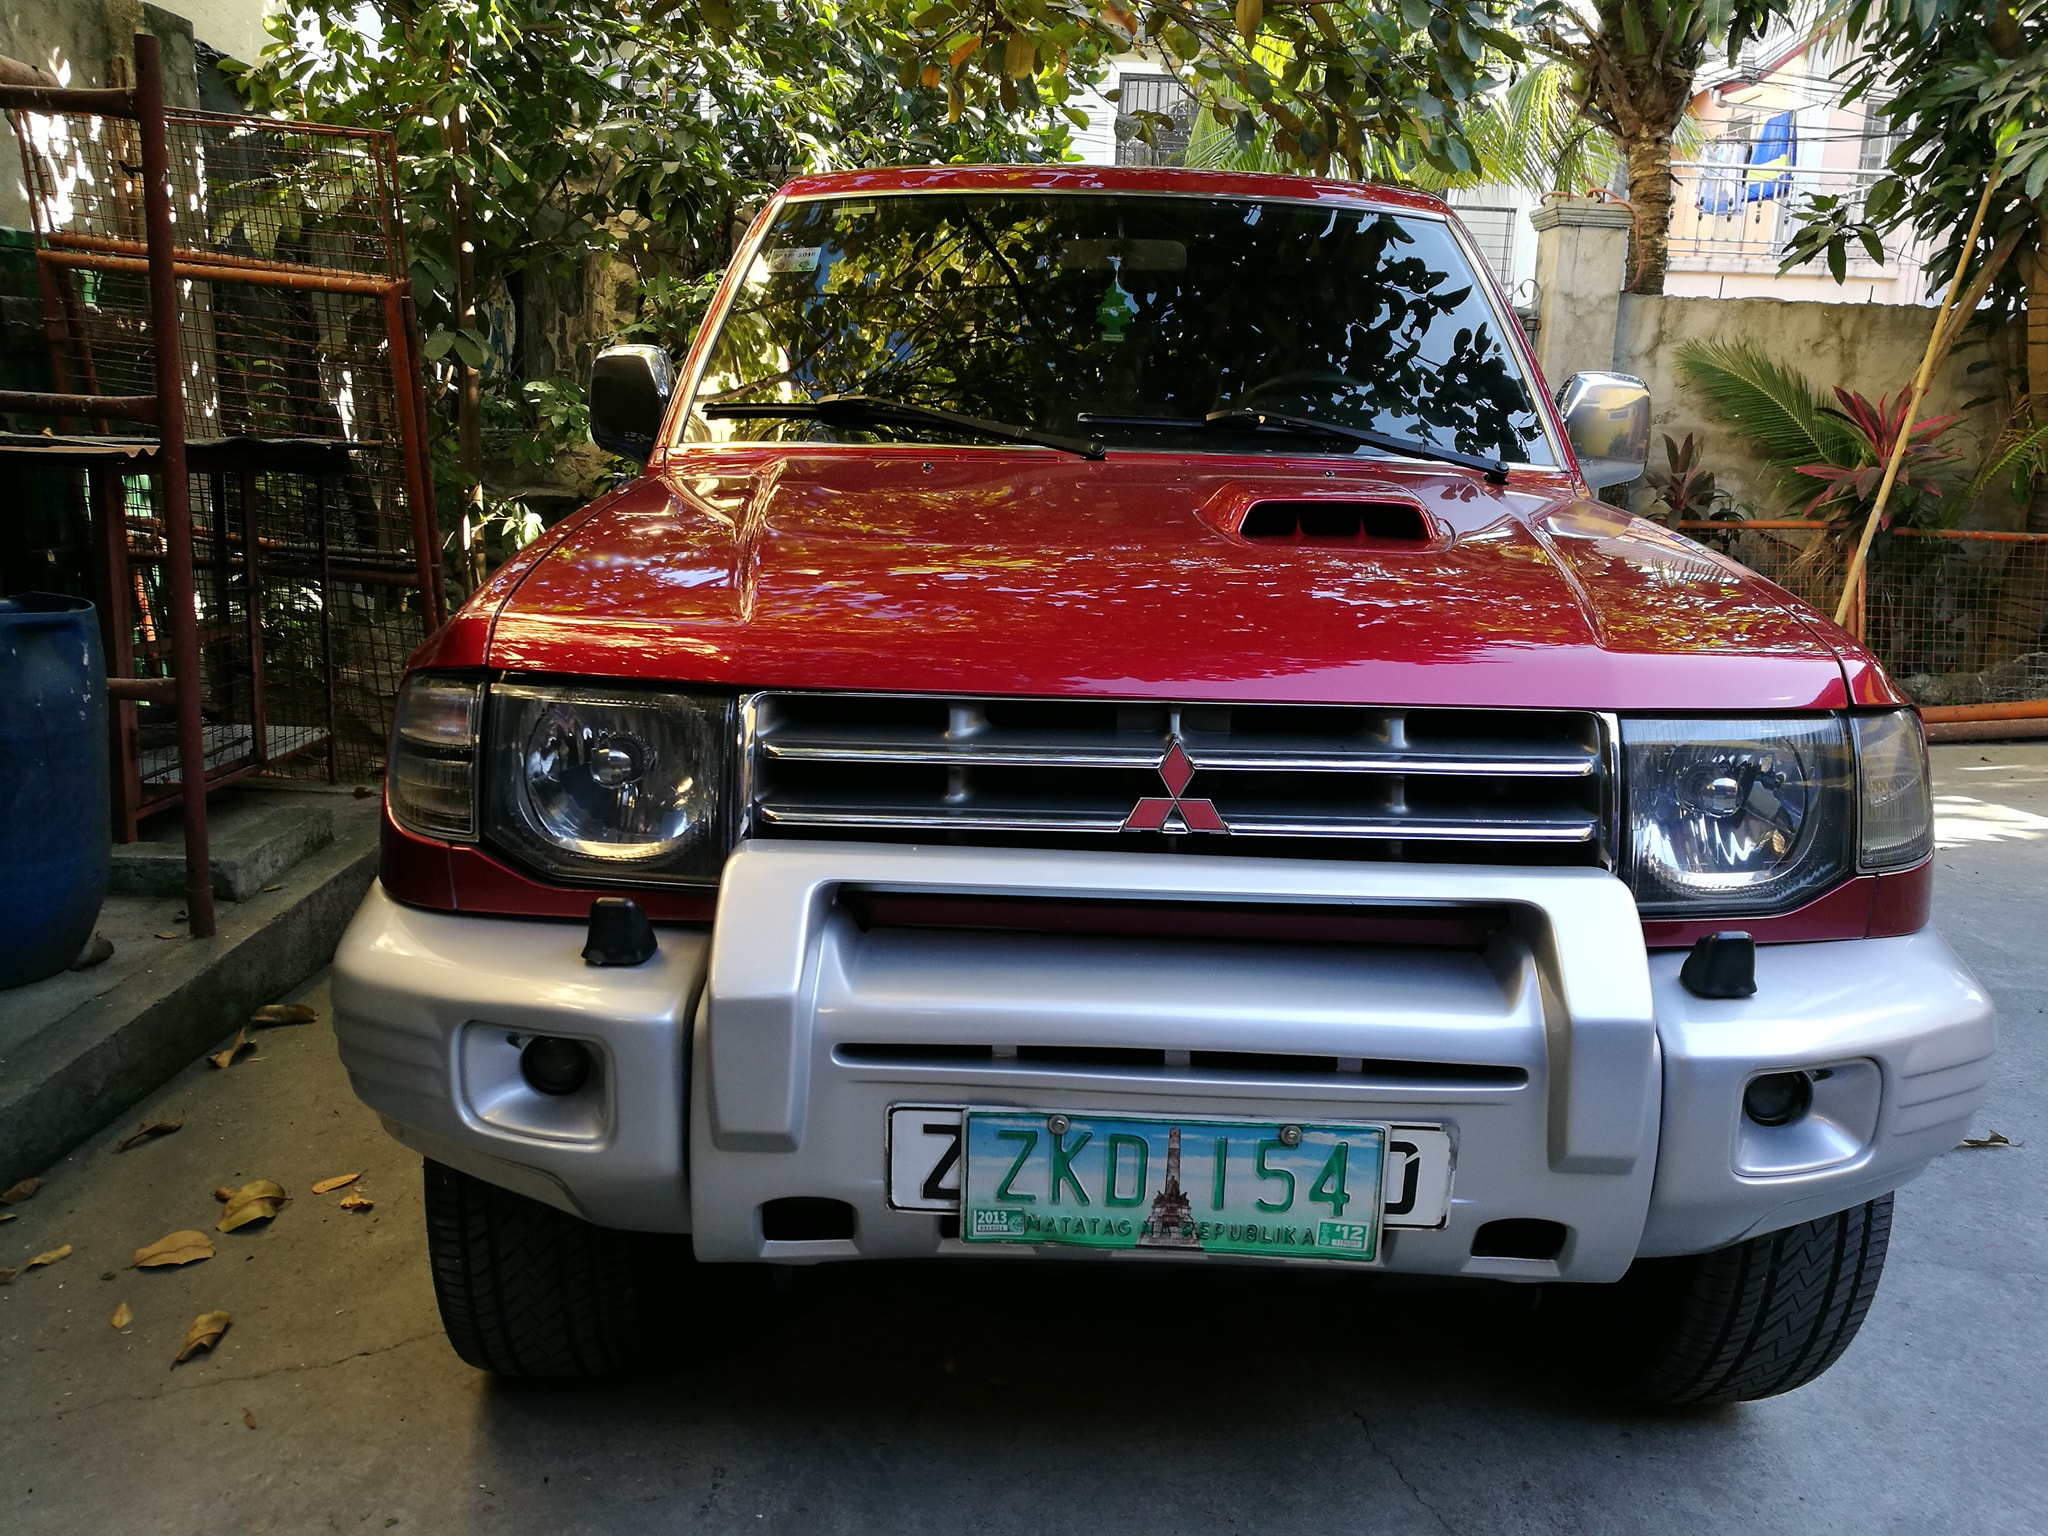 2007 Mitsubishi Pajero Fieldmaster Local photo